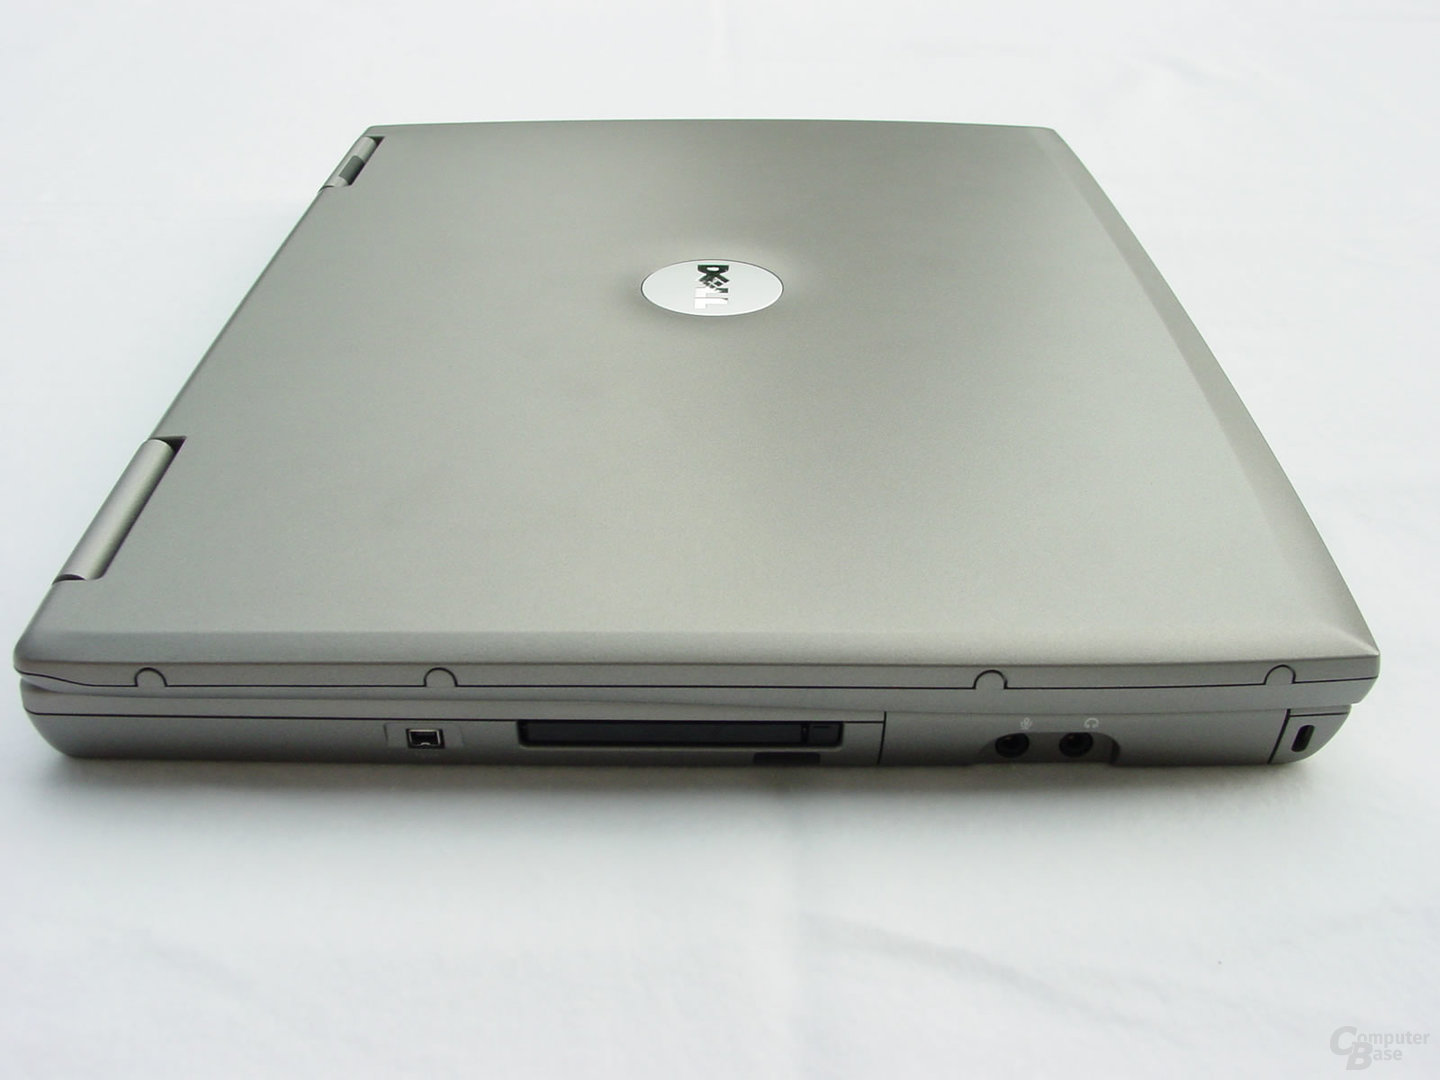 Dell Latitude D505 - links